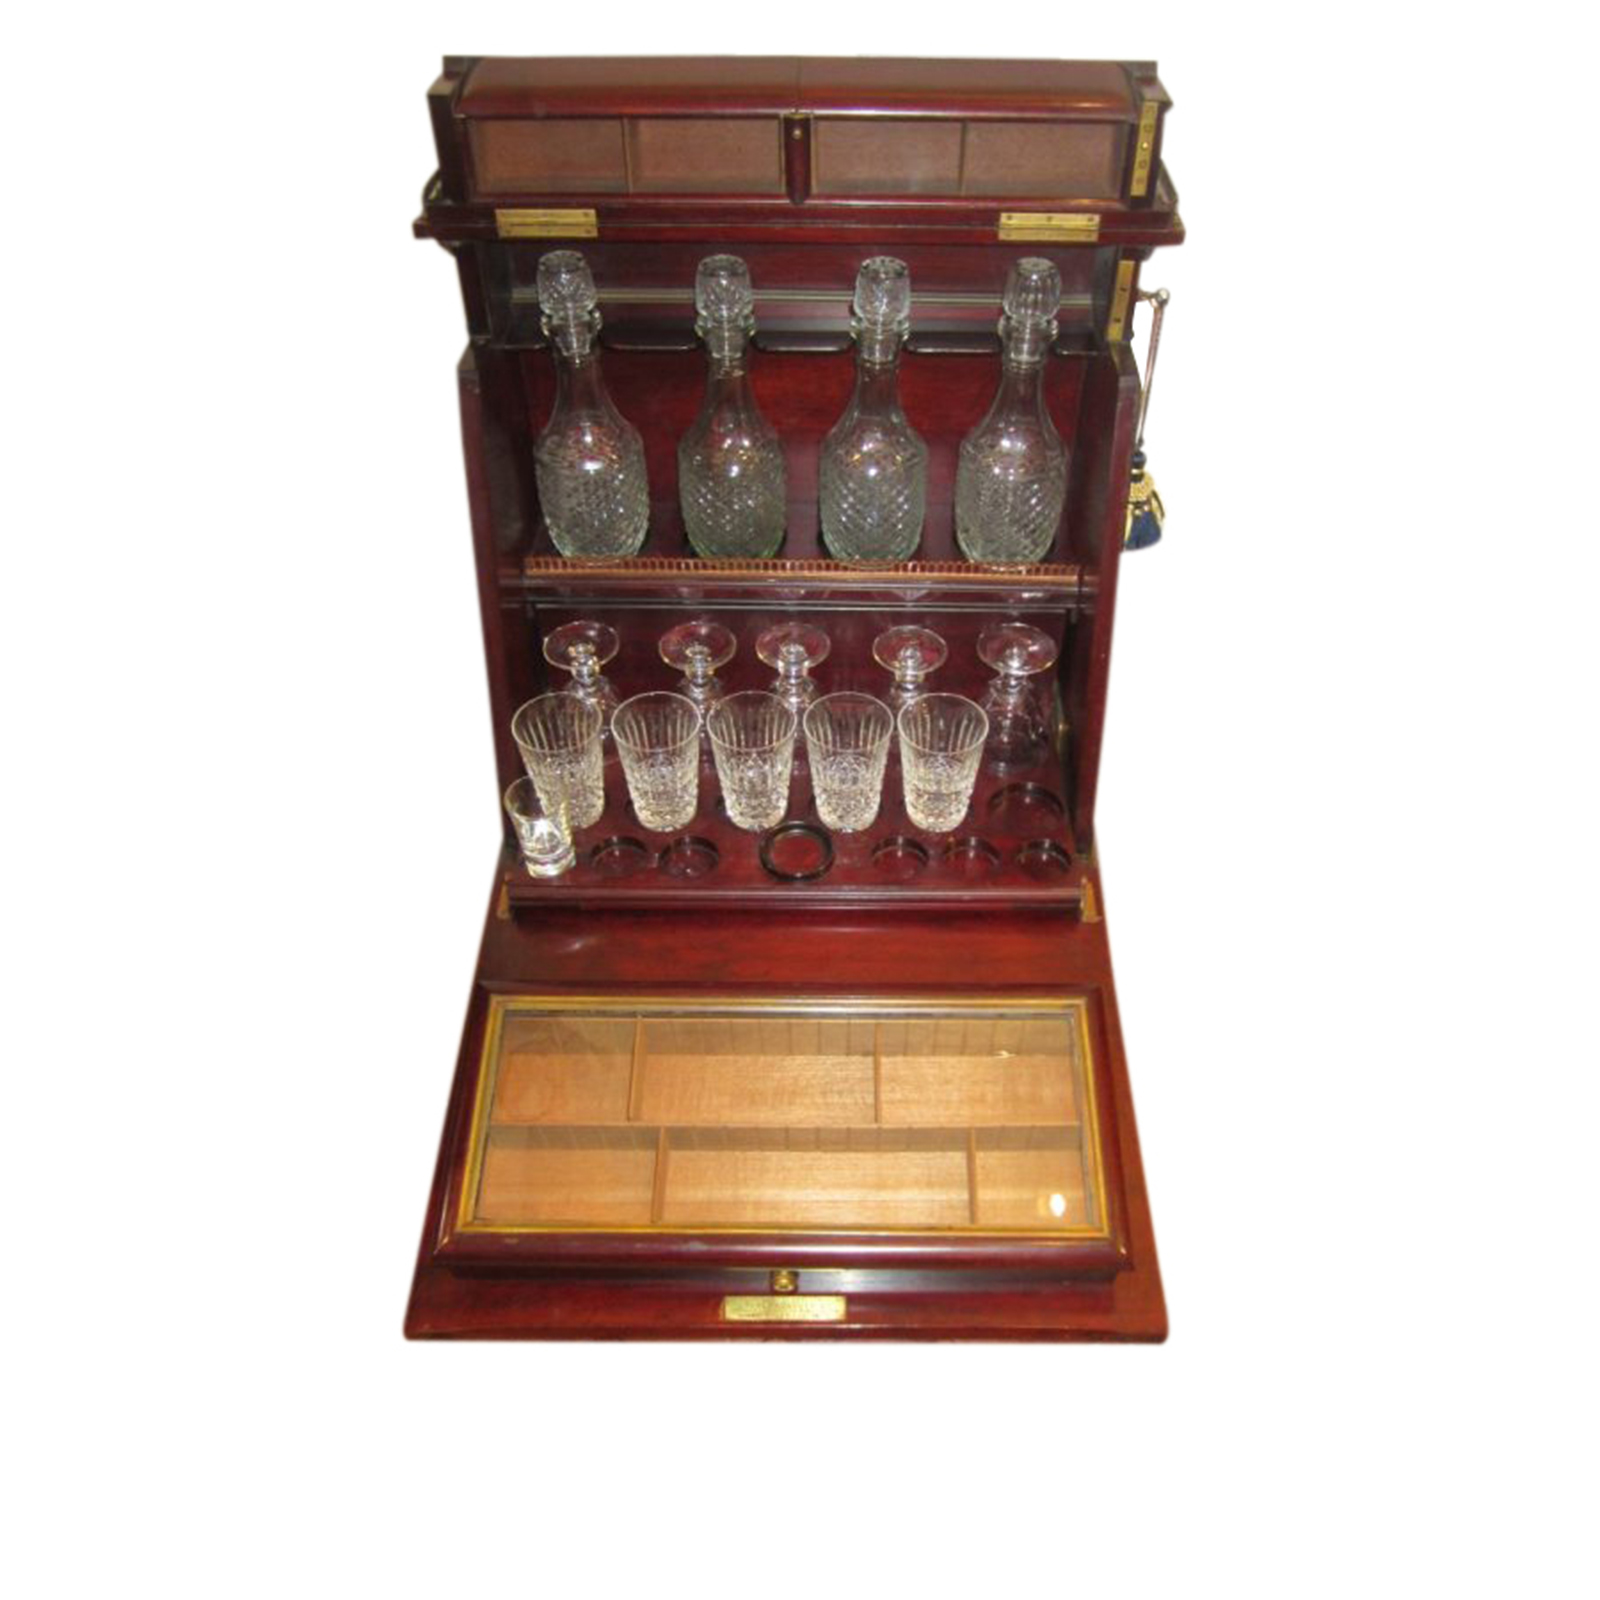 Image of Cabinet Opened